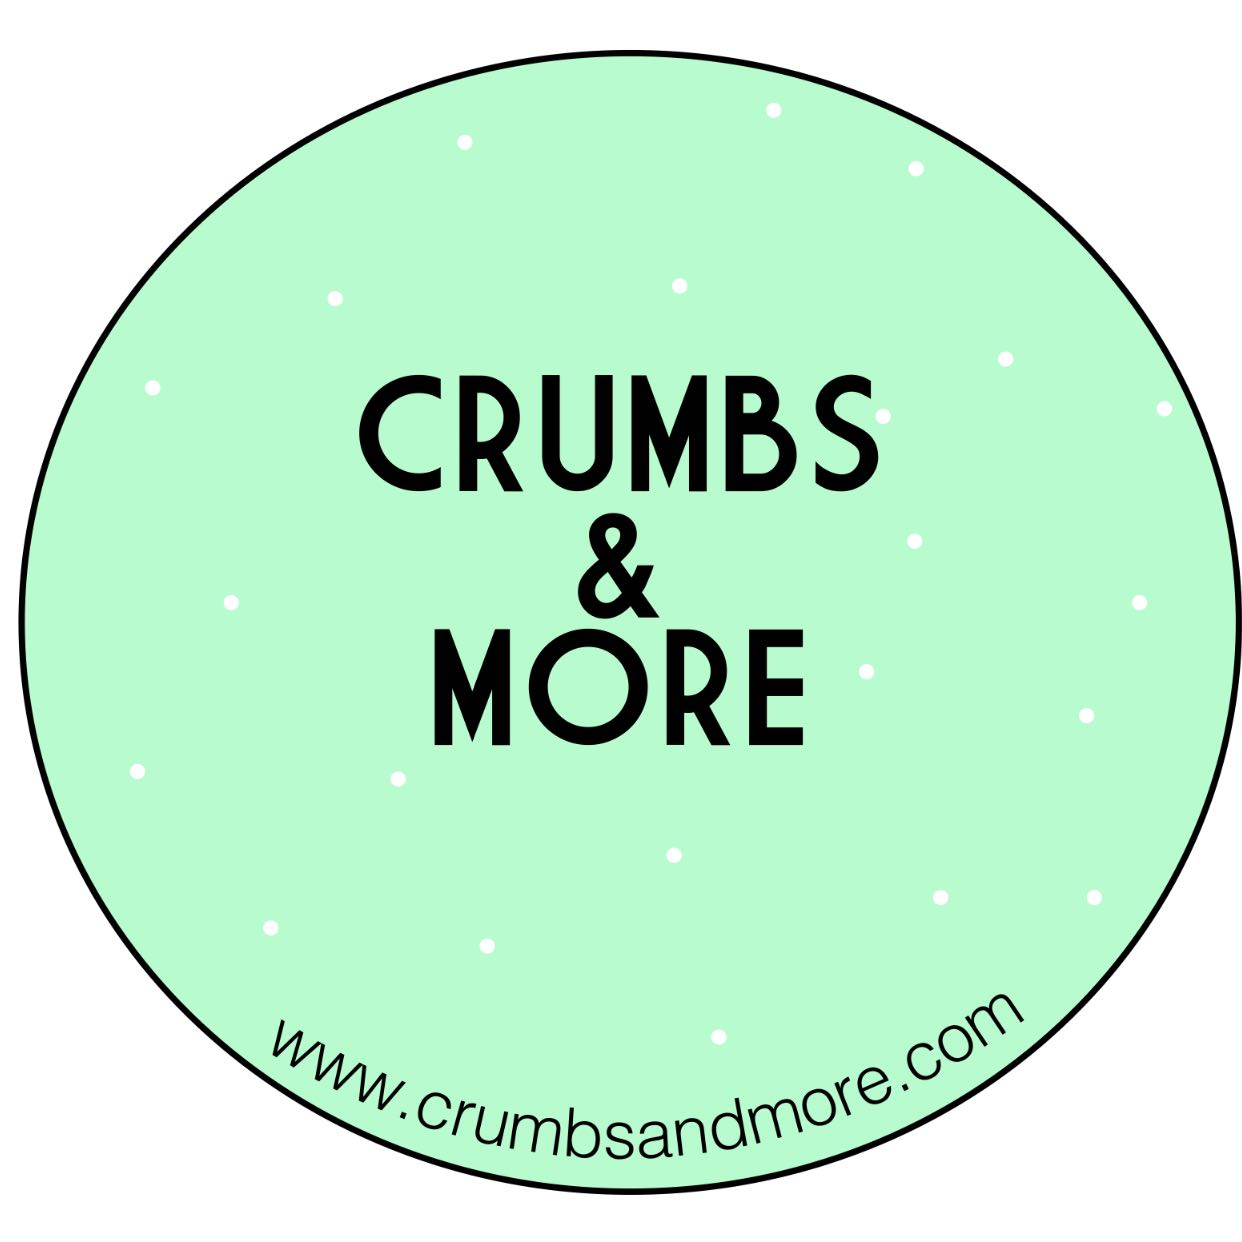 crumbs_and_more